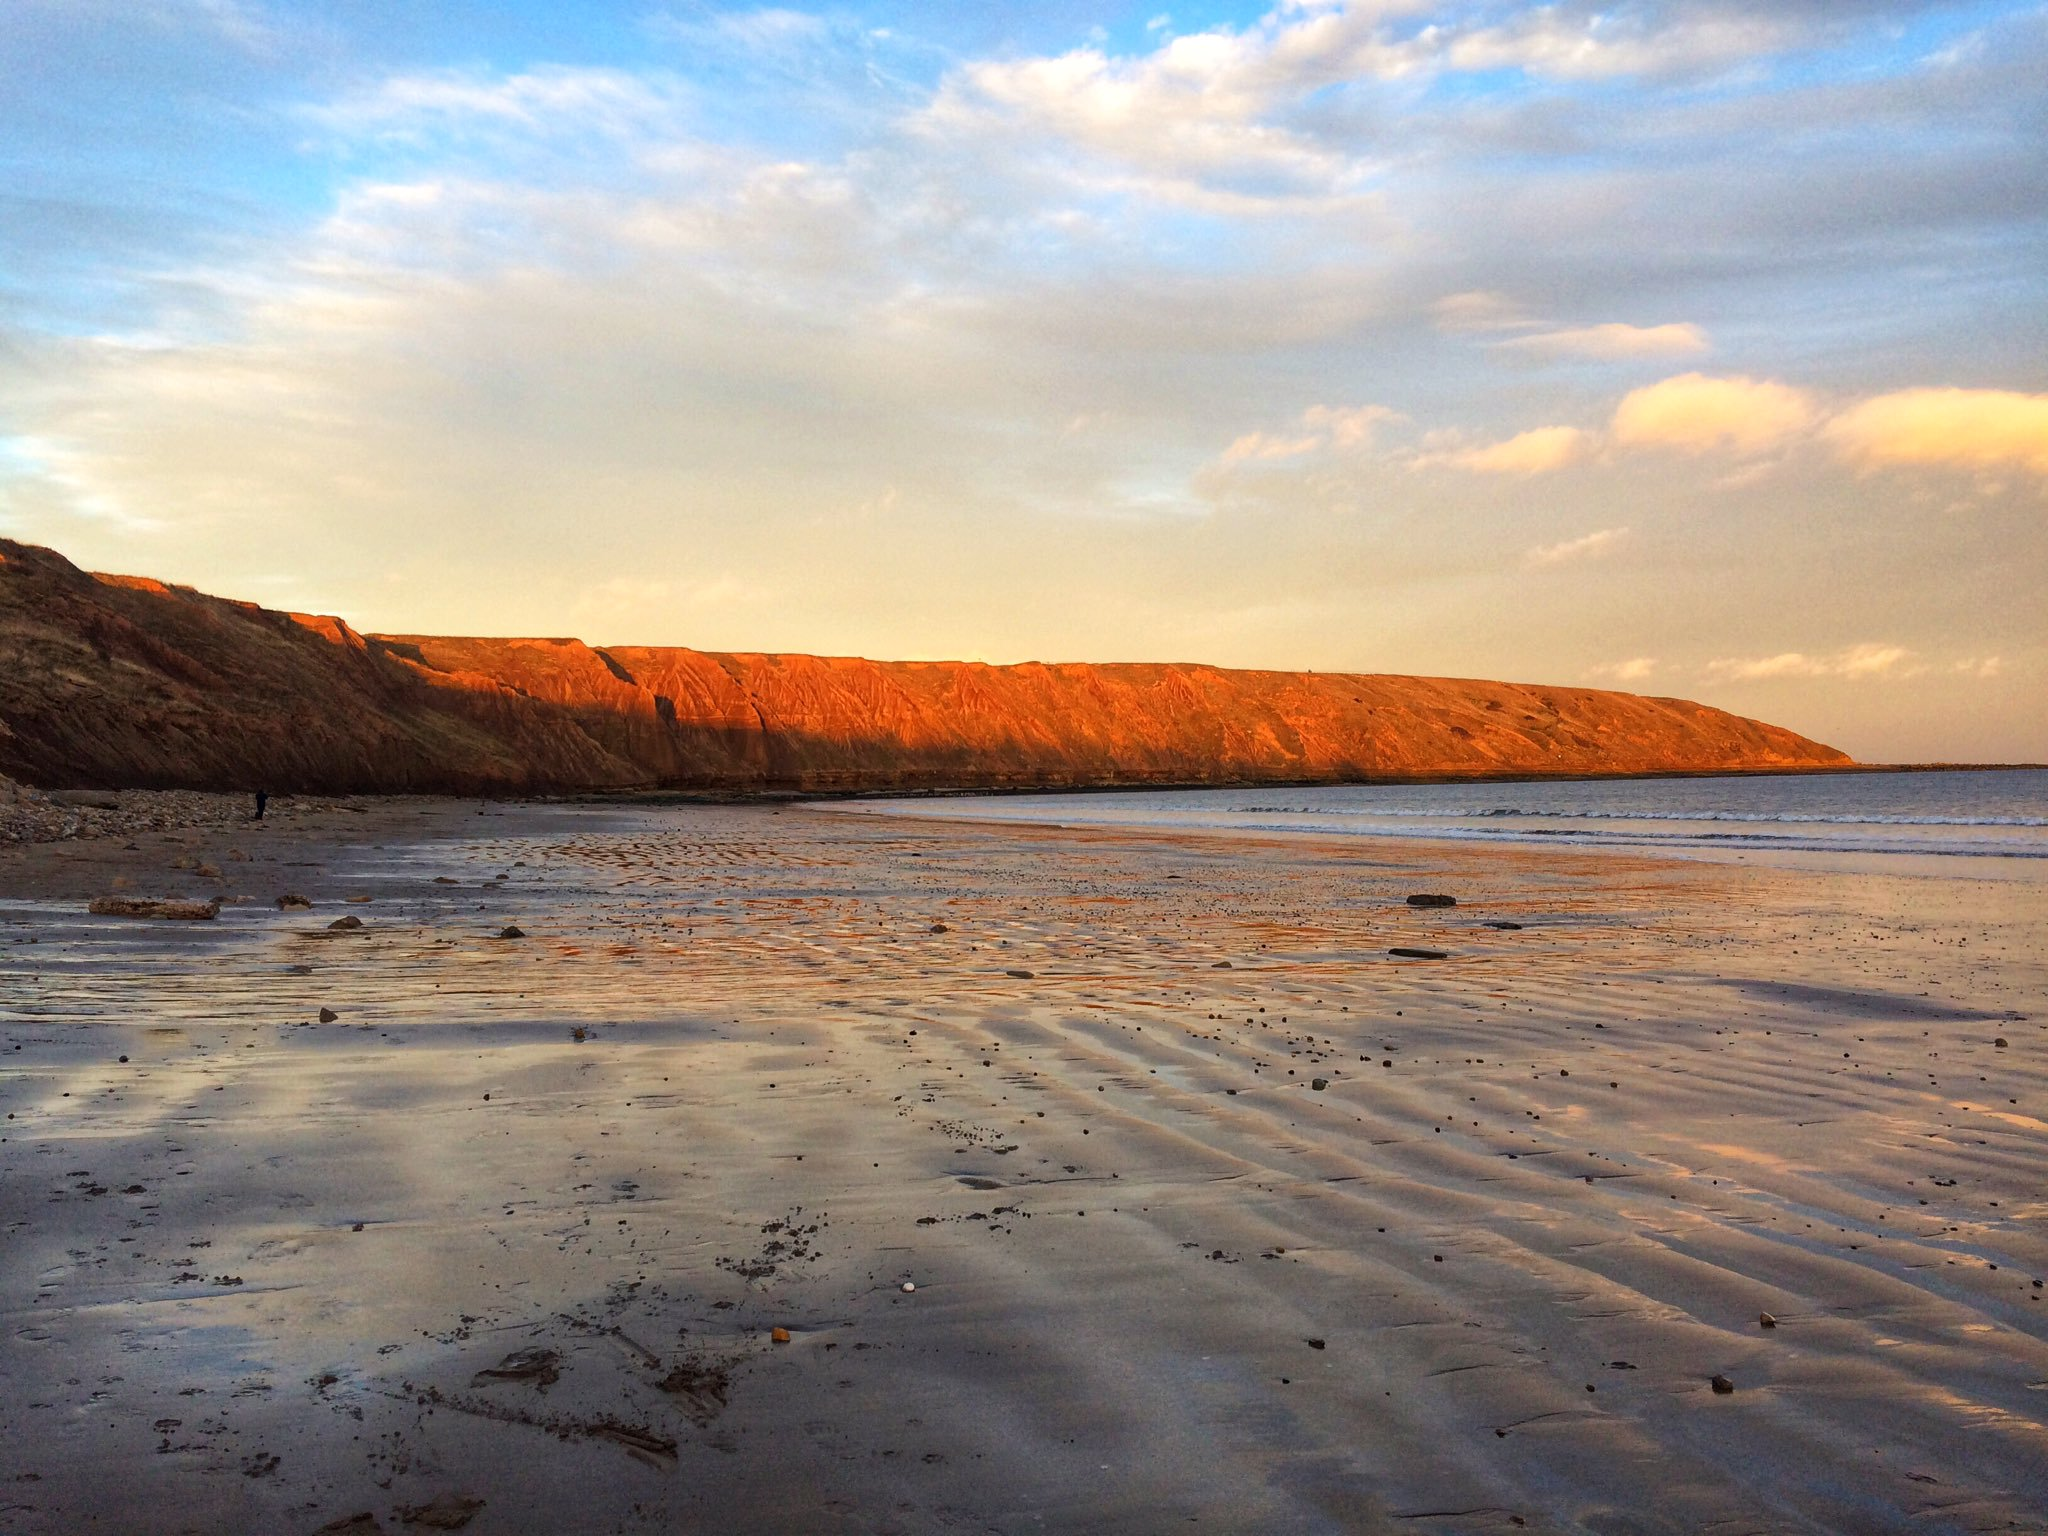 Sunset over Filey Beach